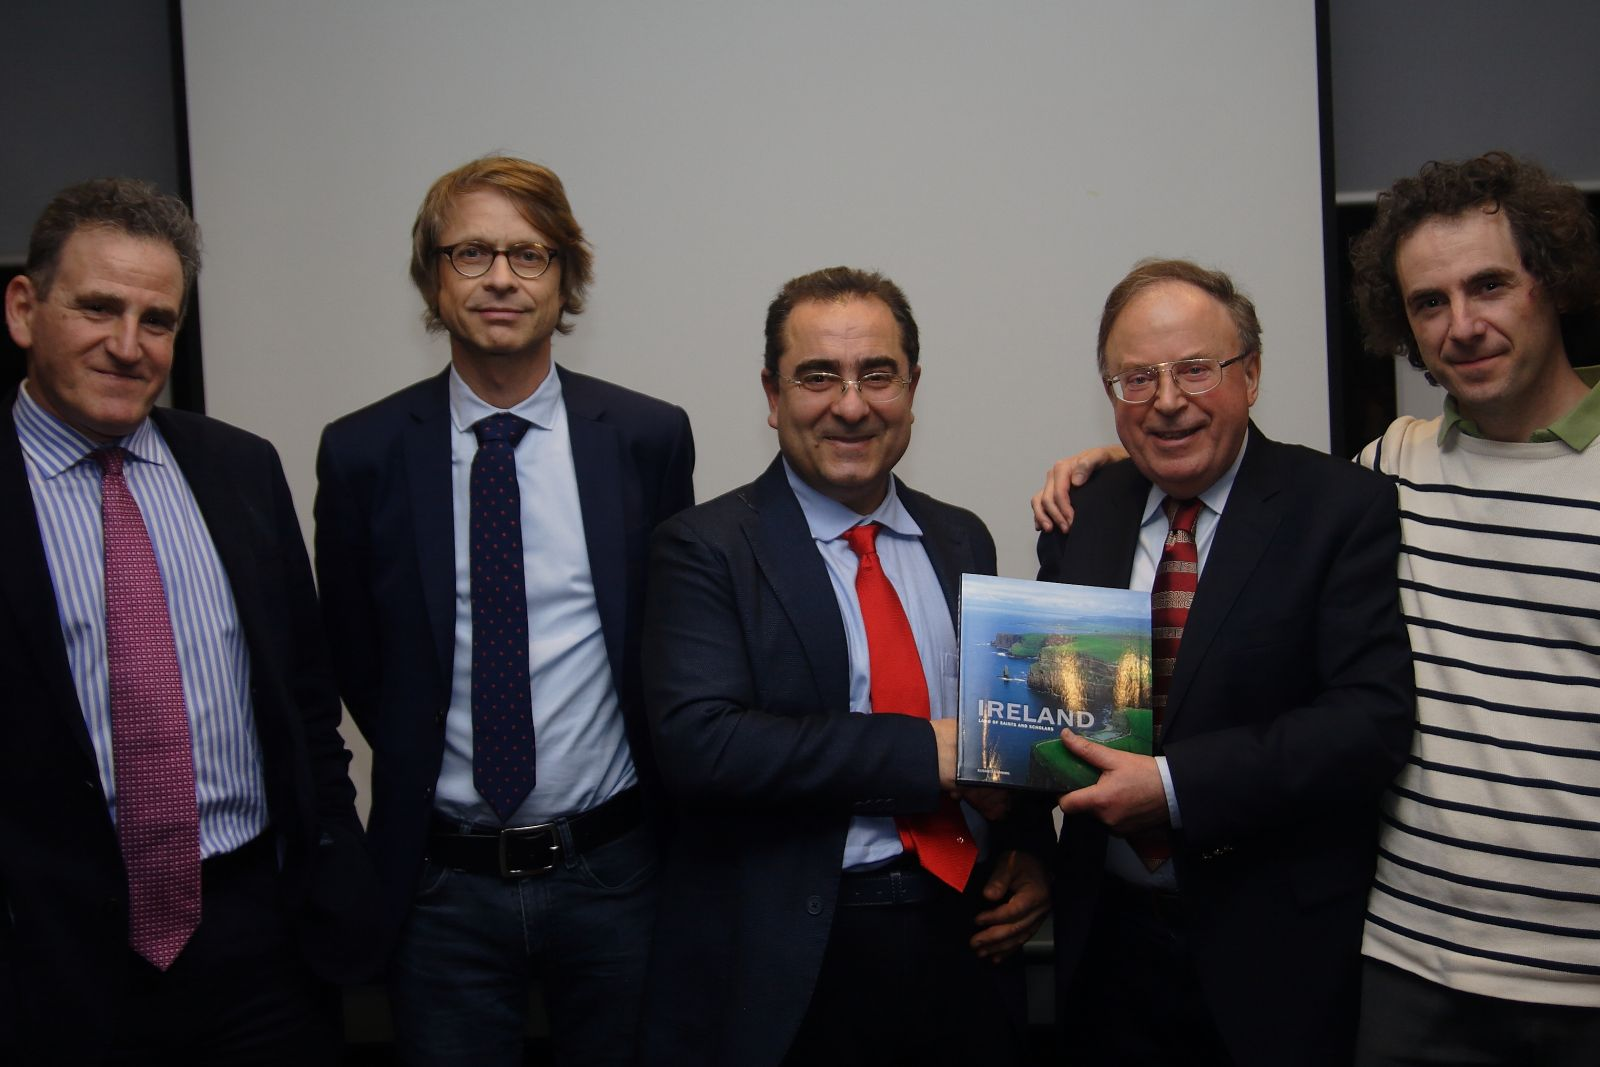 Jim with Prof Nicola Scafetta (centre) and European colleagues at the ICSF lecture in February 2018